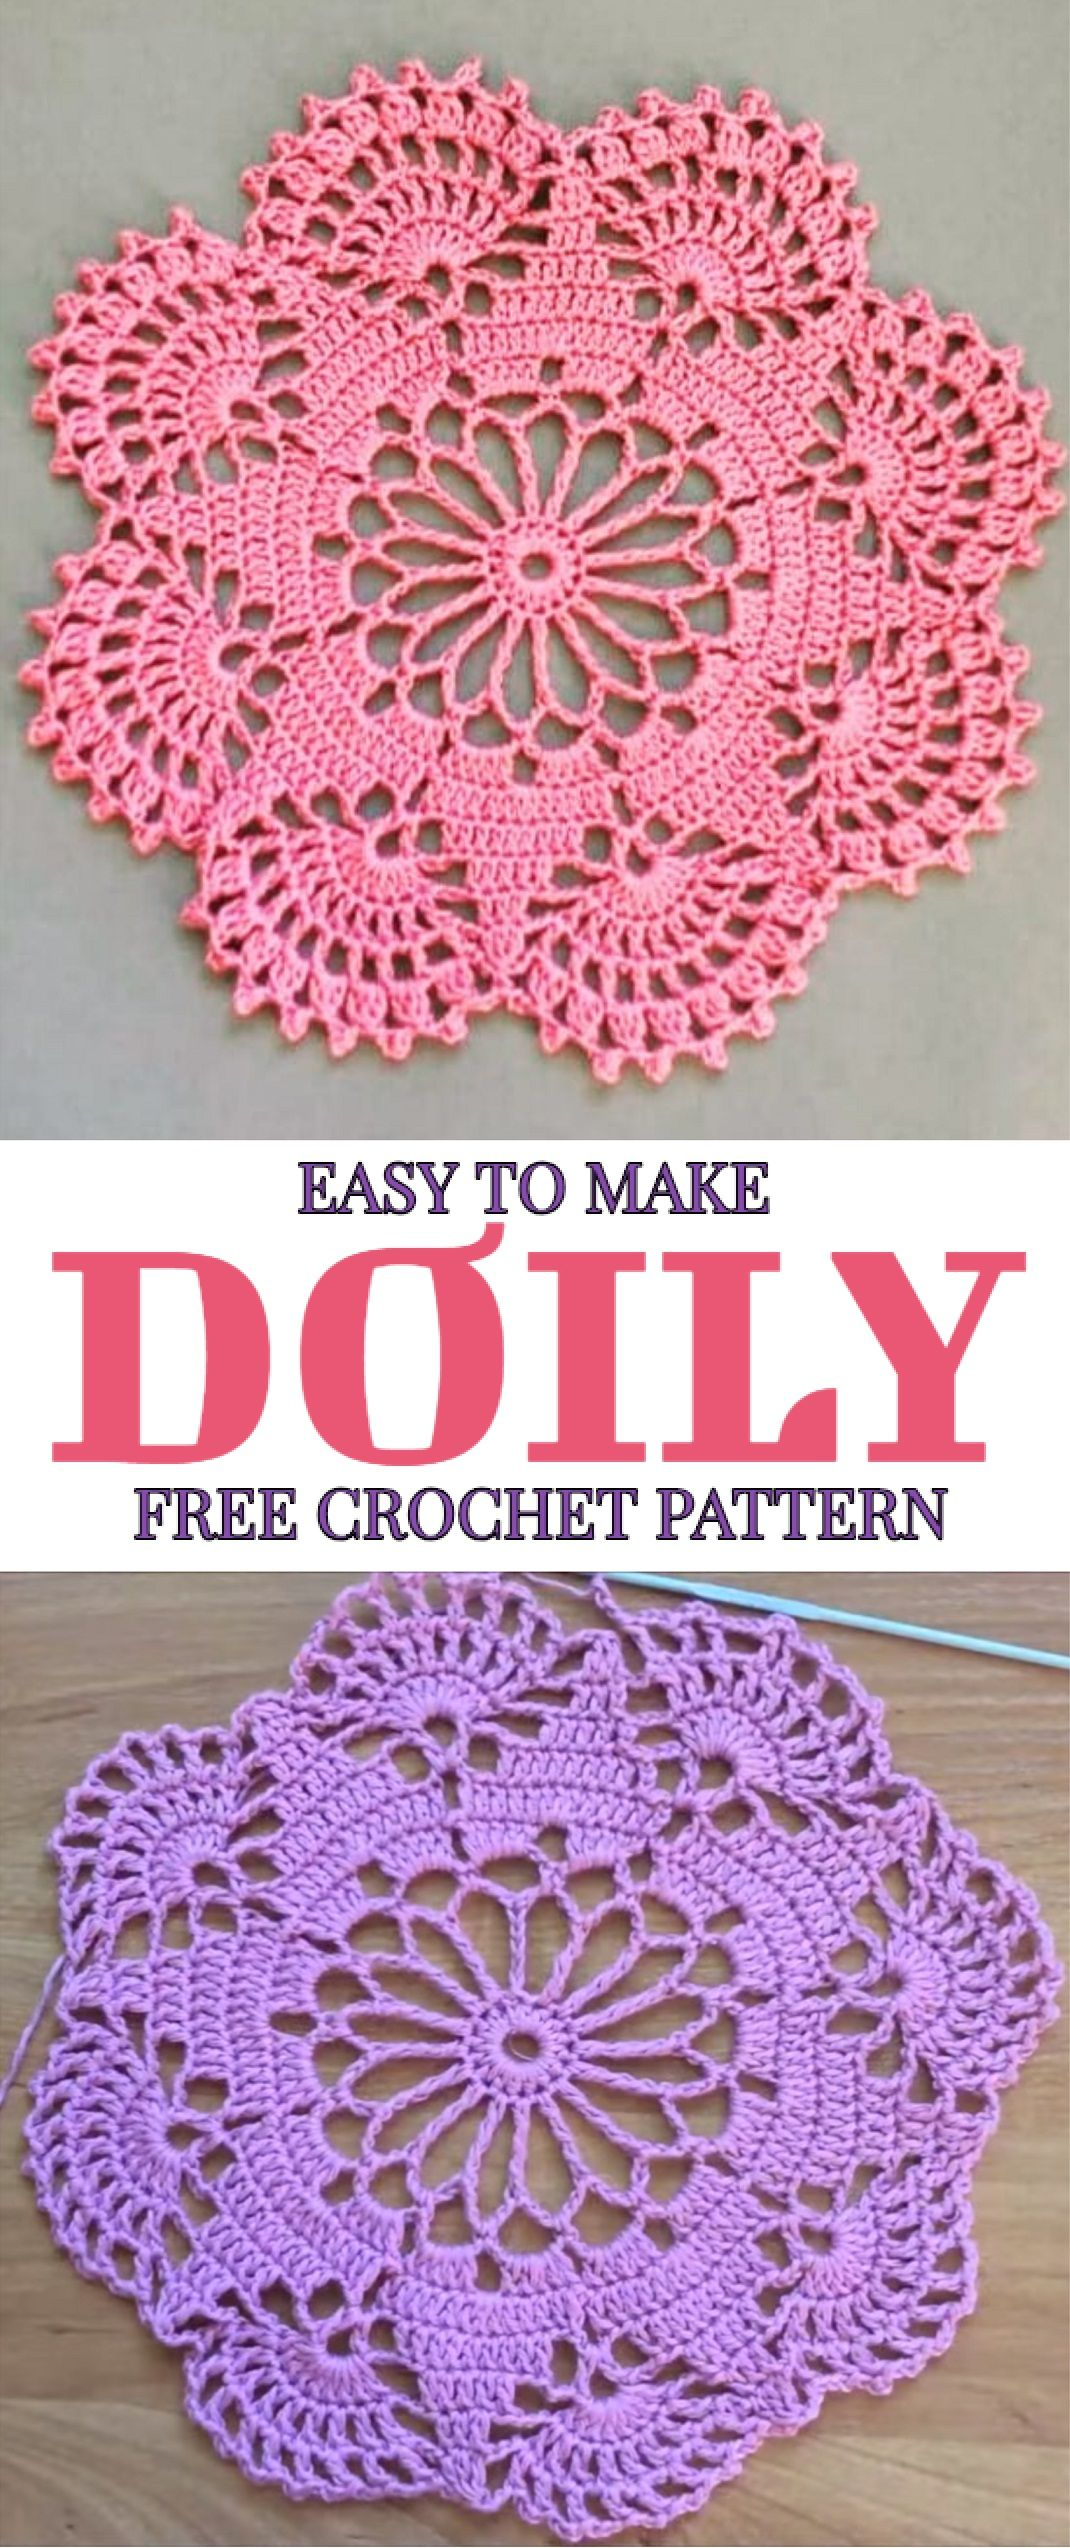 Easy To Make Doily Free Crochet Pattern | Crafting | Pinterest ...